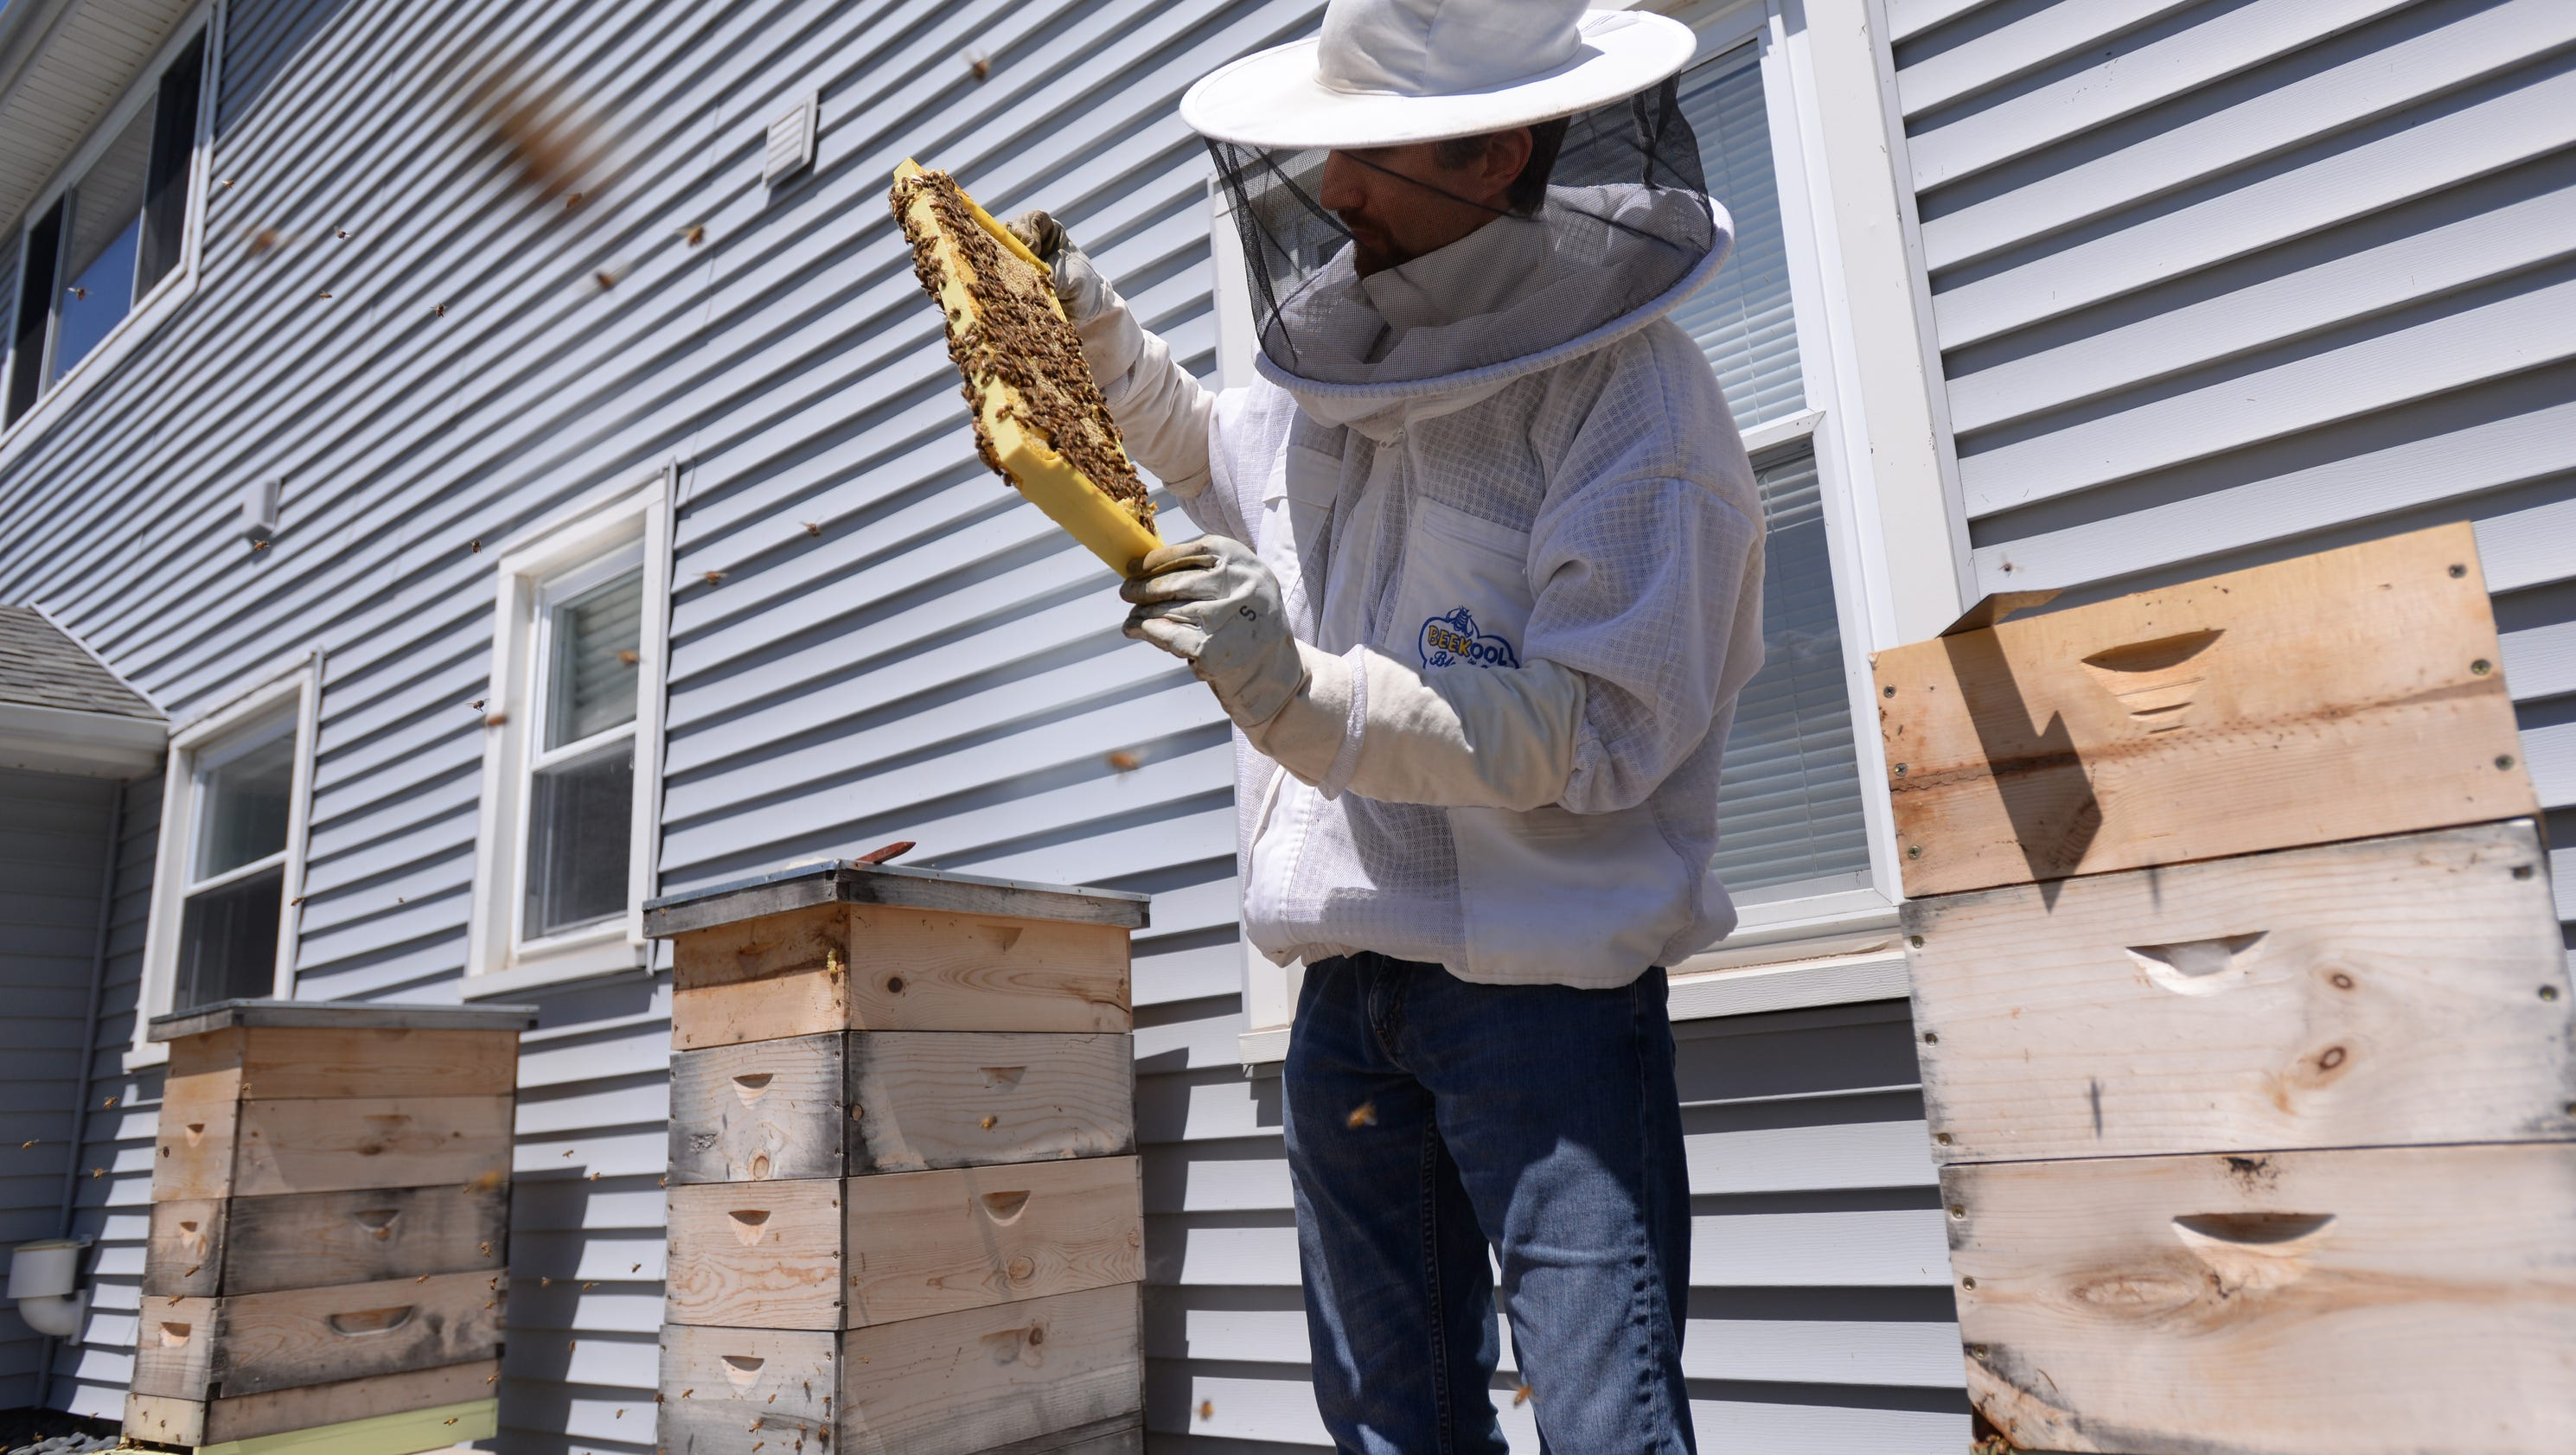 michigan beekeepers fight to keep hives in backyard